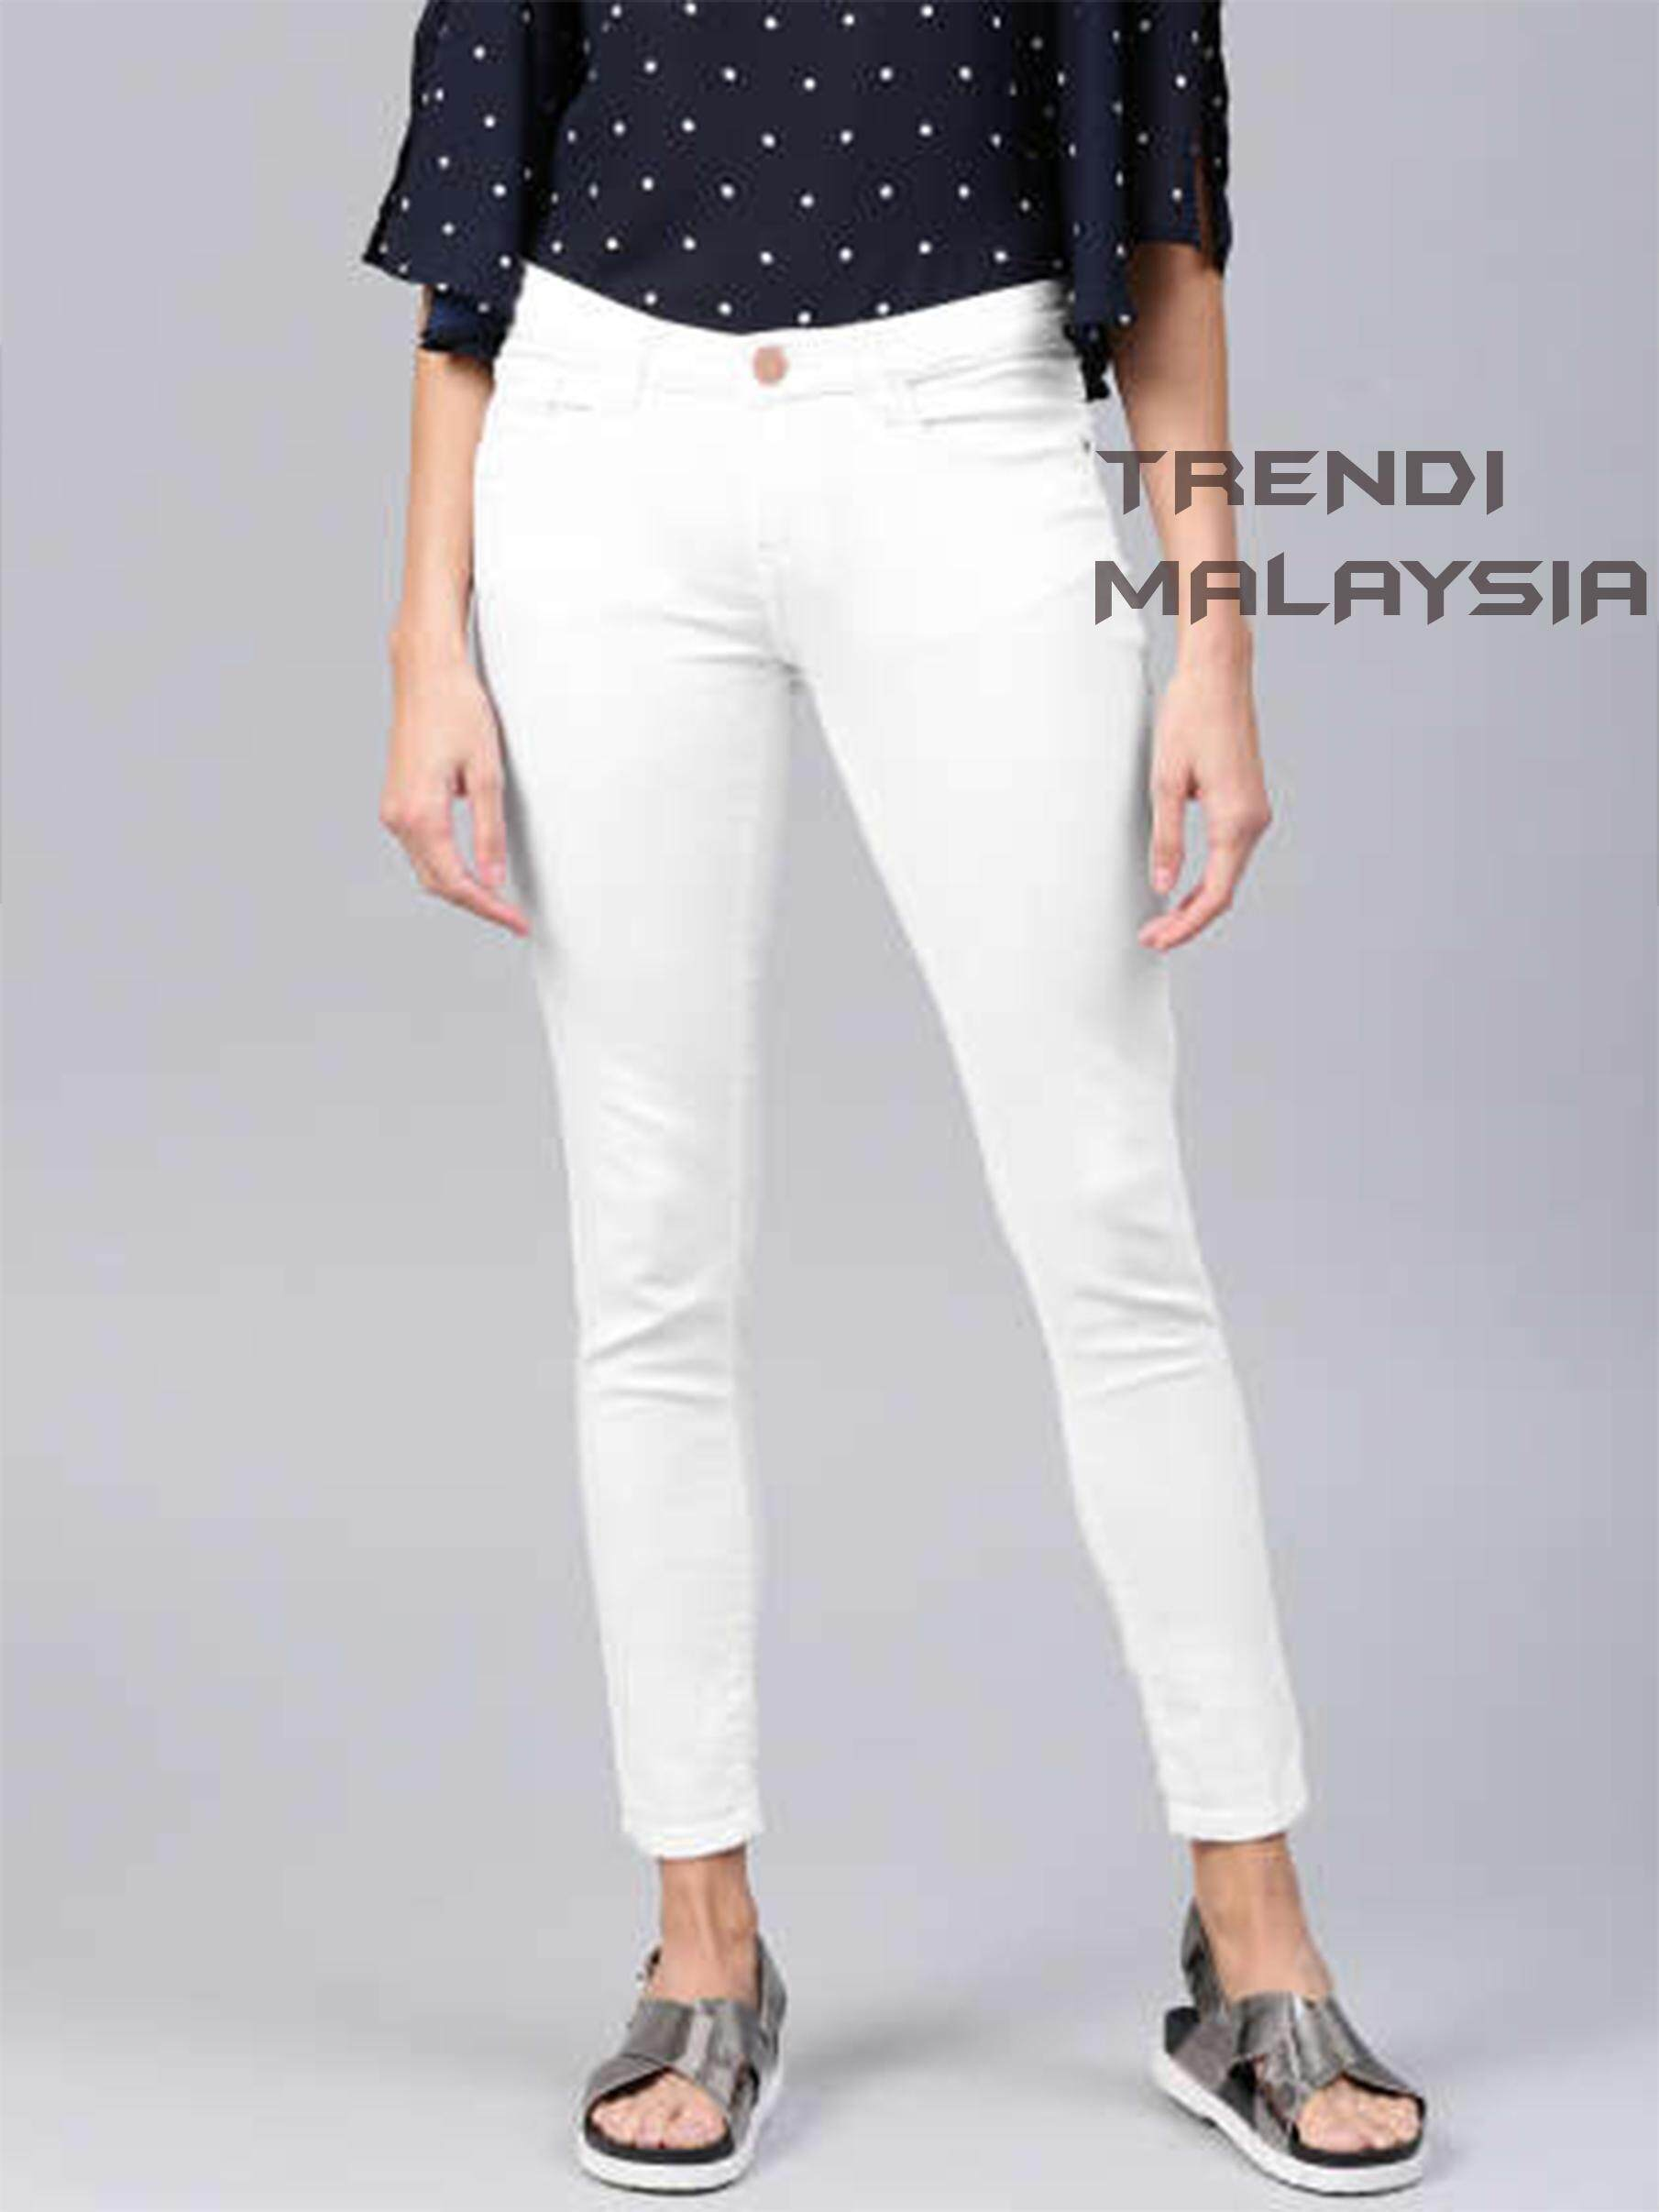 WOMEN WHITE JEANS IN MALAYSIA   2-3 DAYS FAST DELIVERY IN MALAYSIA   ELASTIC 326444da683b